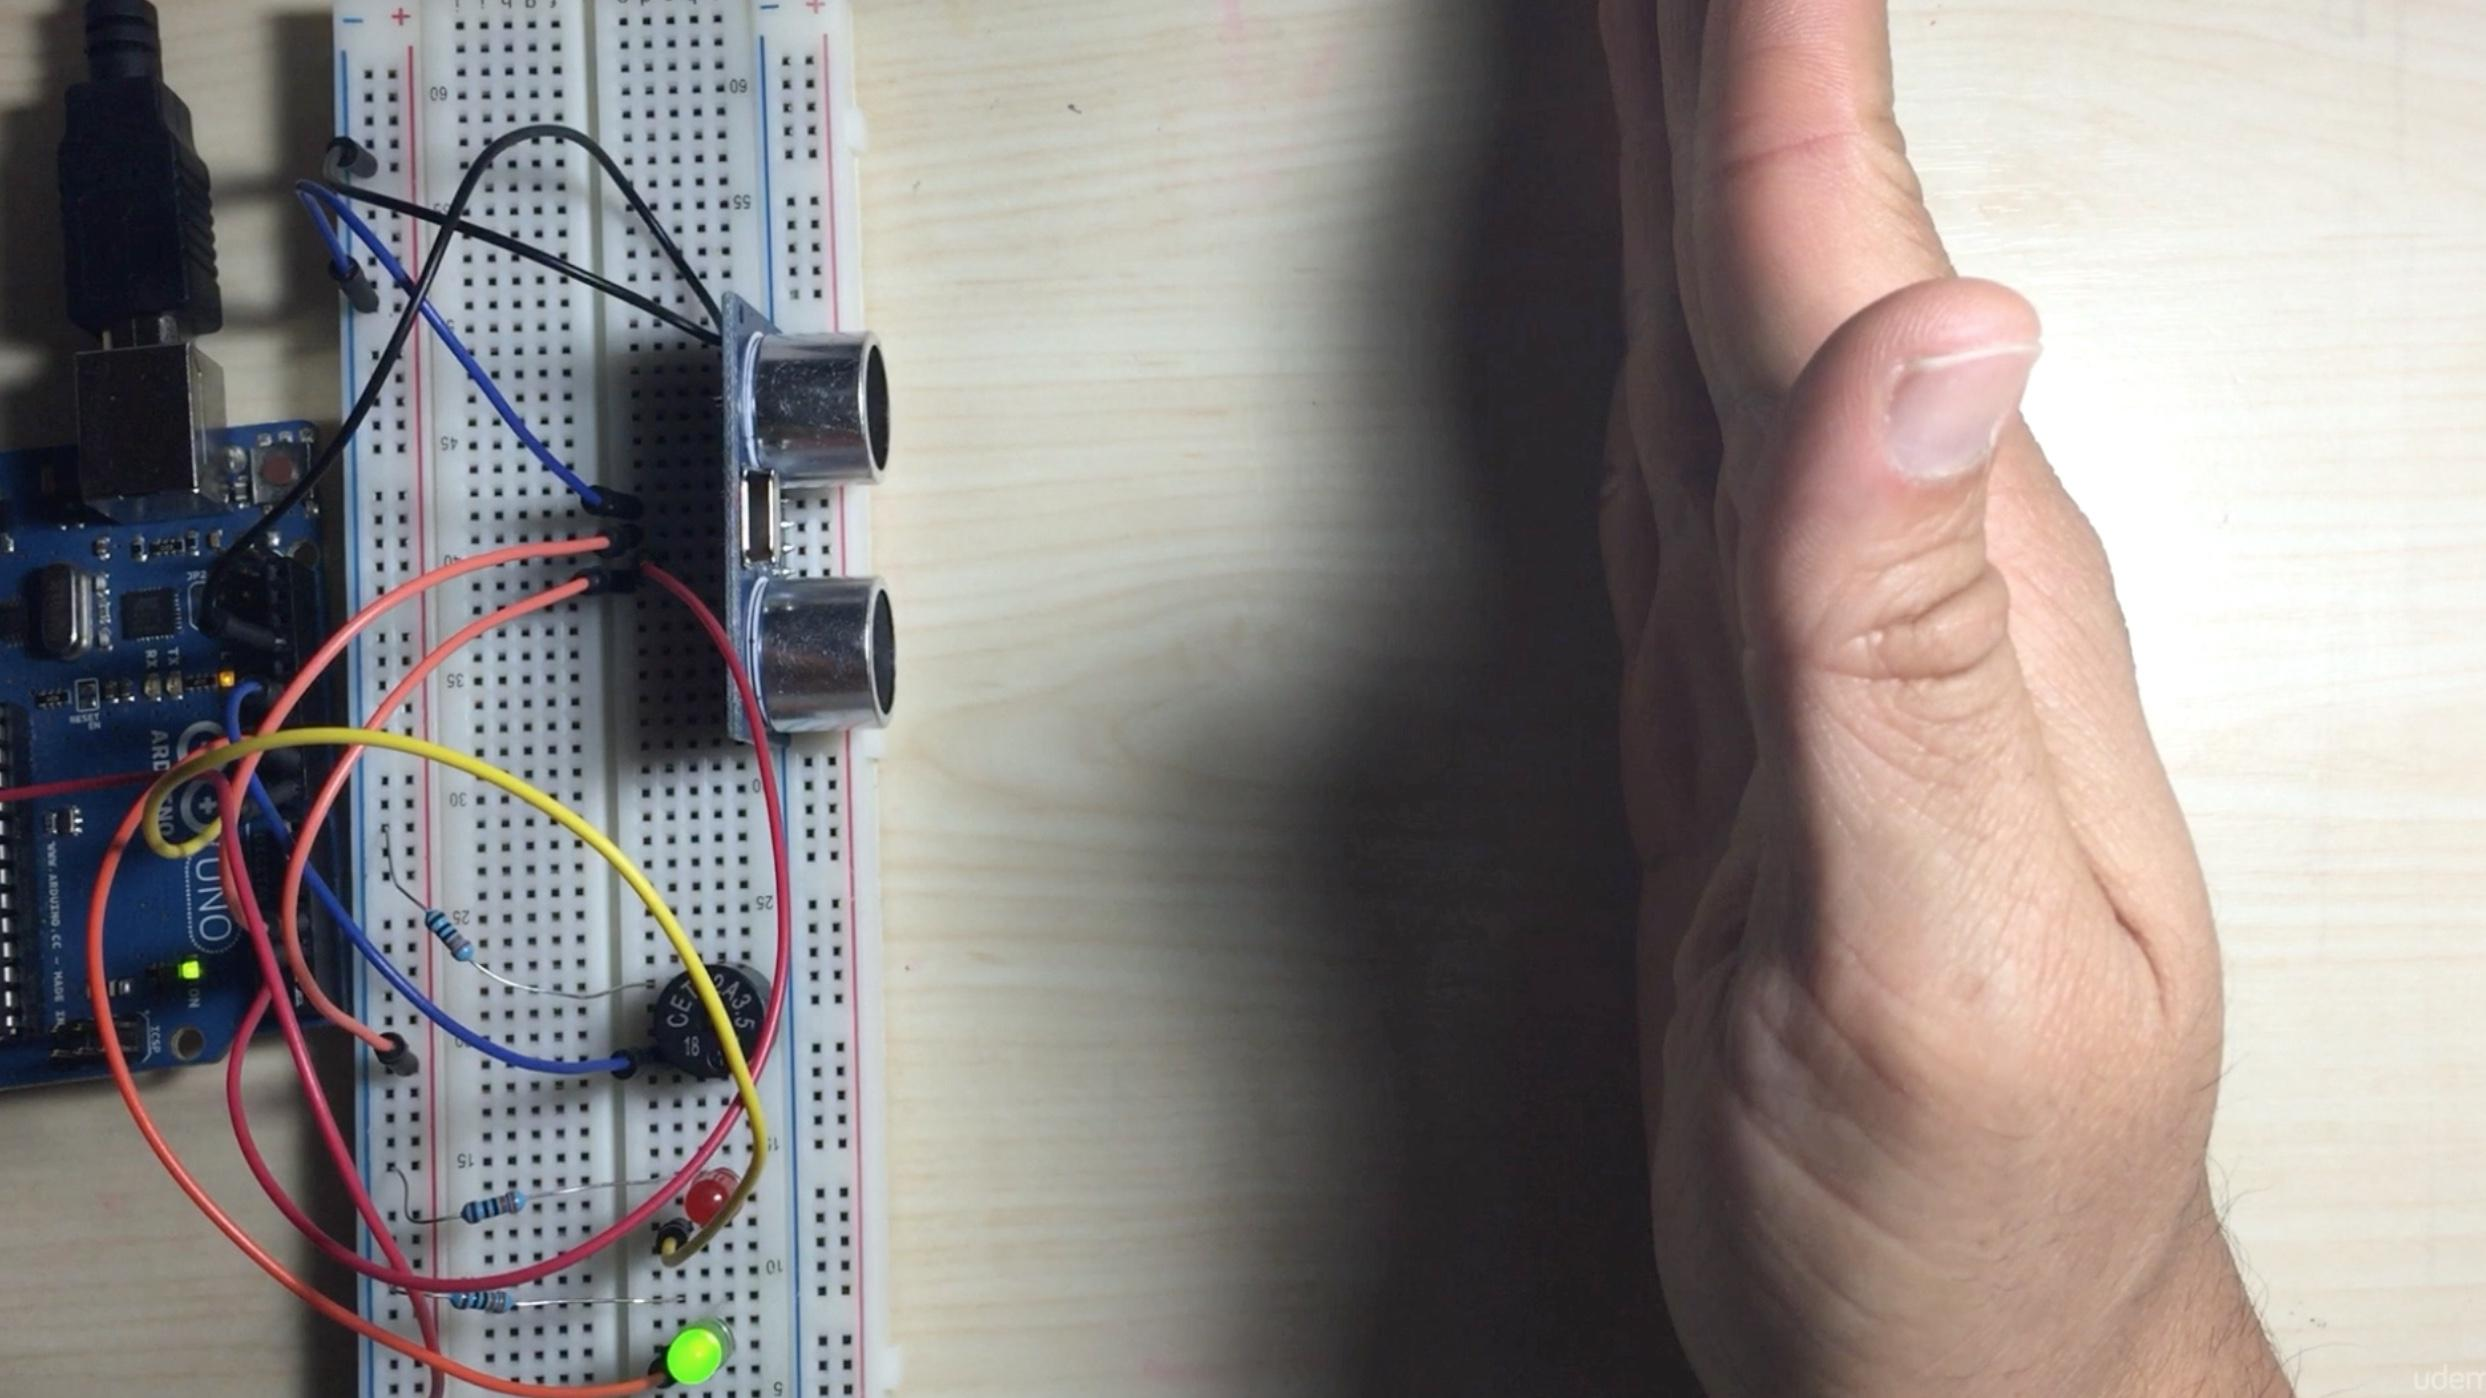 The Complete Arduino Projects Digital Learning Bundle